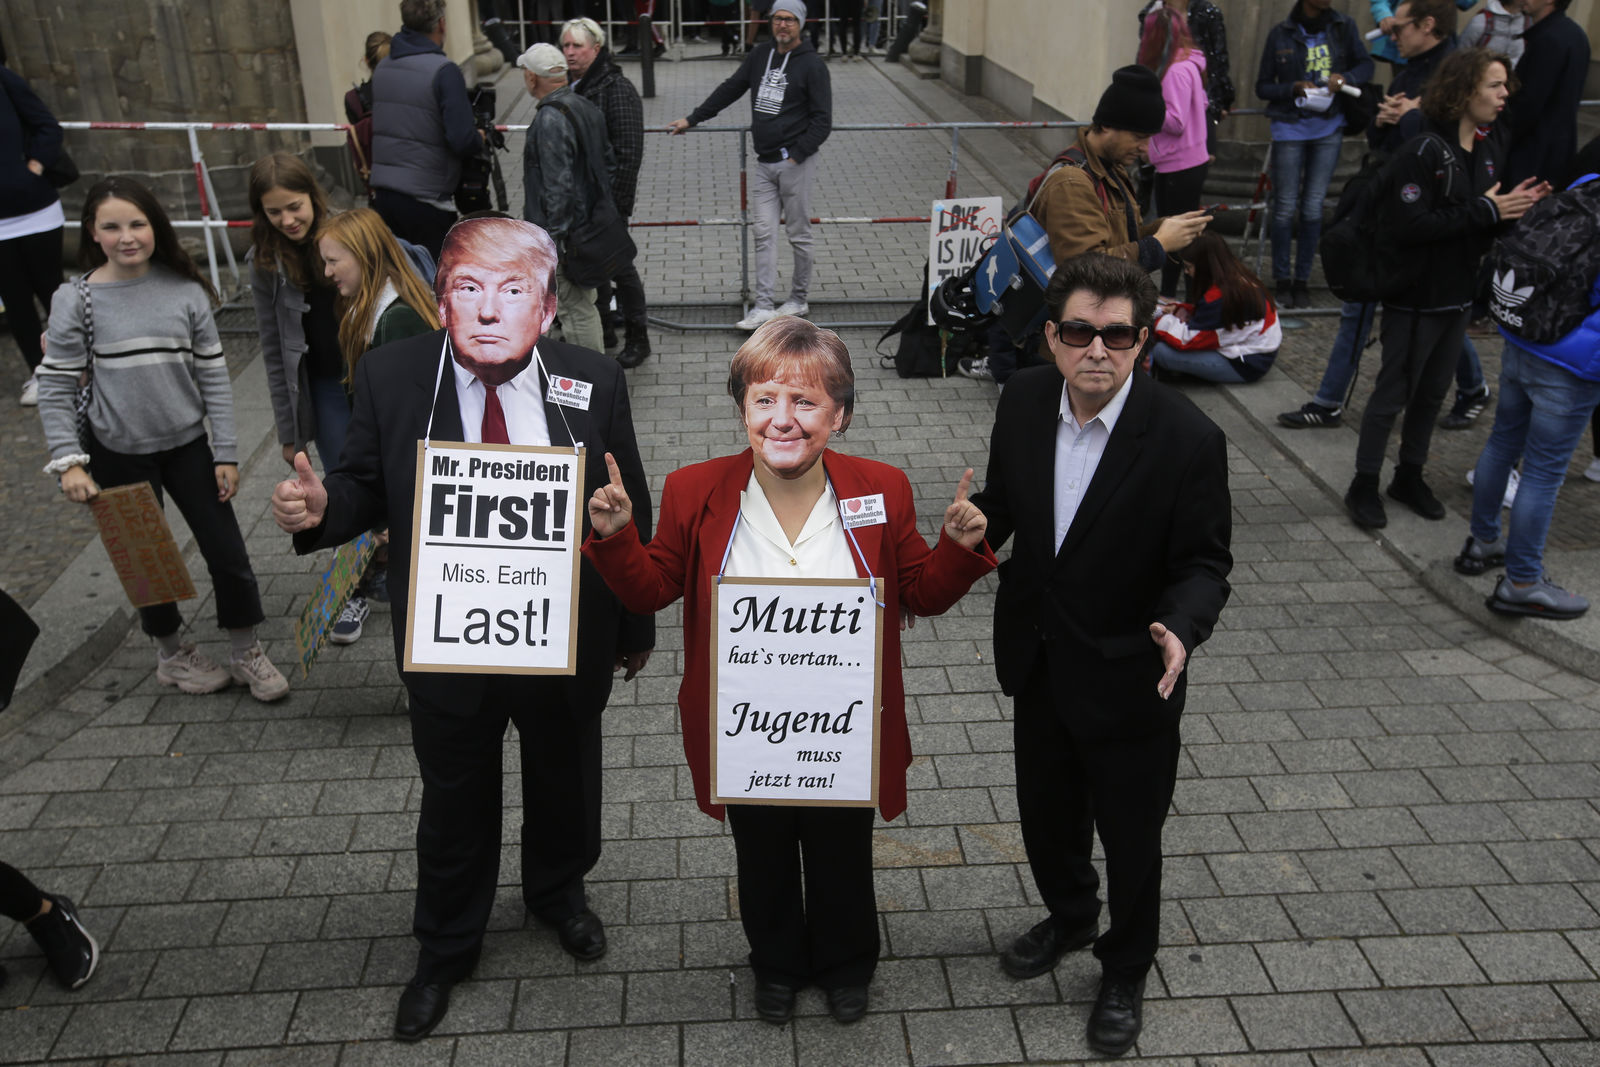 People wear masks of US President Donald Trump and German Chancellor Angela Merkel as they attend a 'Fridays For Future' rally at the Brandenburg Gate in Berlin, Germany, Friday, Sept. 20, 2019. rman slogan reads:  'Mom has missed it, youth has to do it now'. (AP Photo/Markus Schreiber)